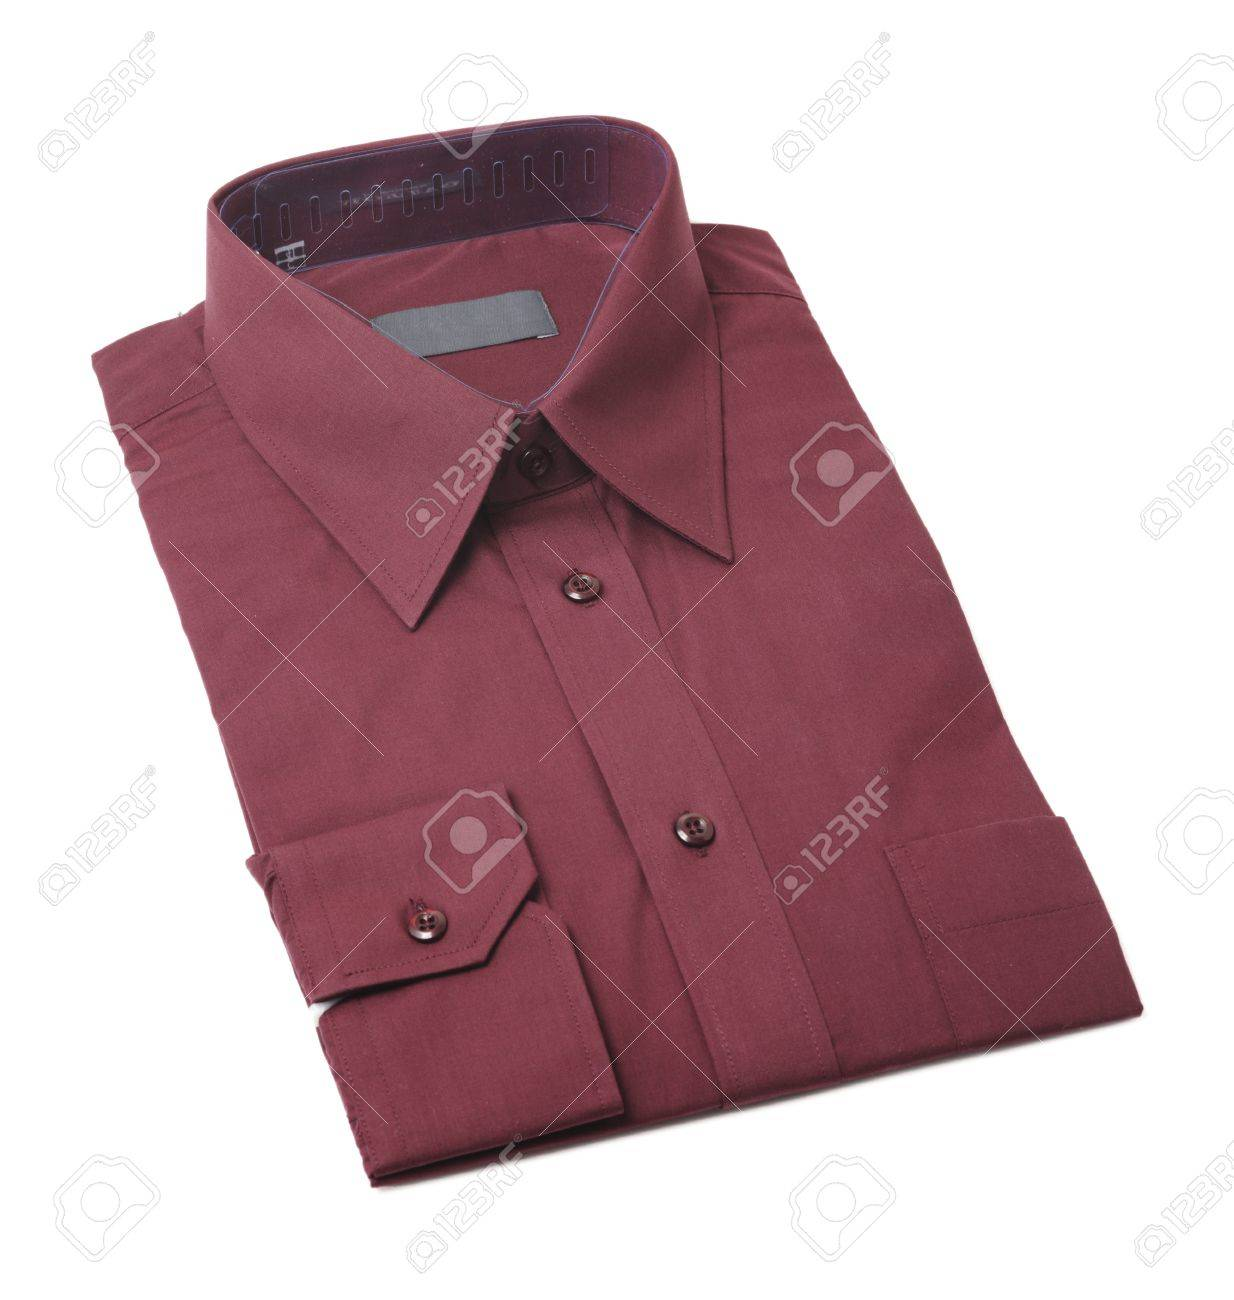 Dark Red Men's Dress Shirt Folded On White Stock Photo- Picture ...